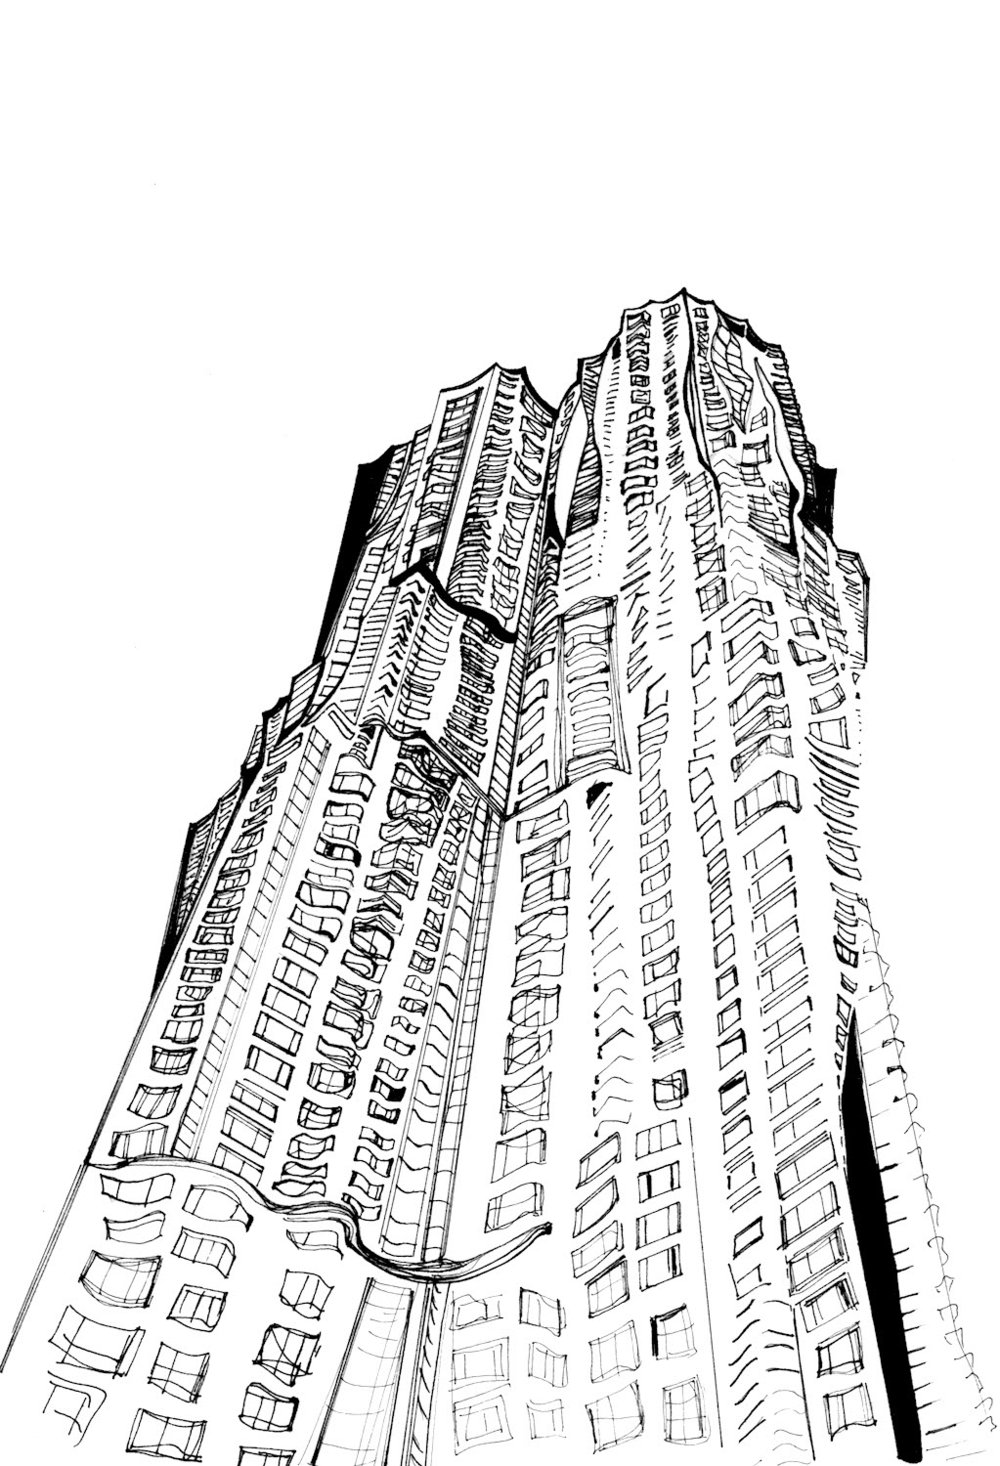 8 Spruce, The Frank Gehry Building